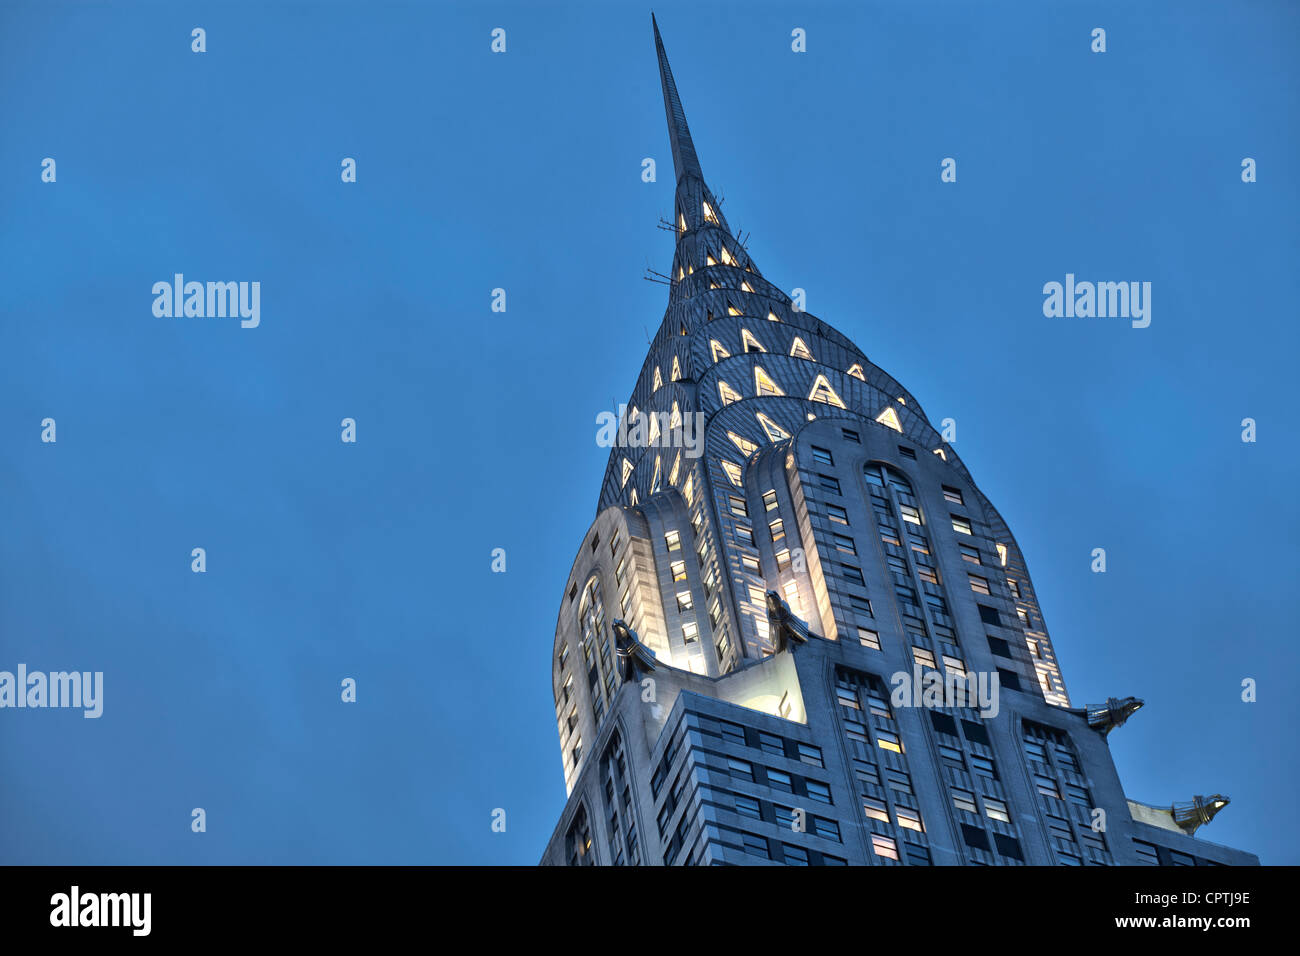 Chrysler Building at dusk at 42nd St and Lexington Avenue, New York City. - Stock Image